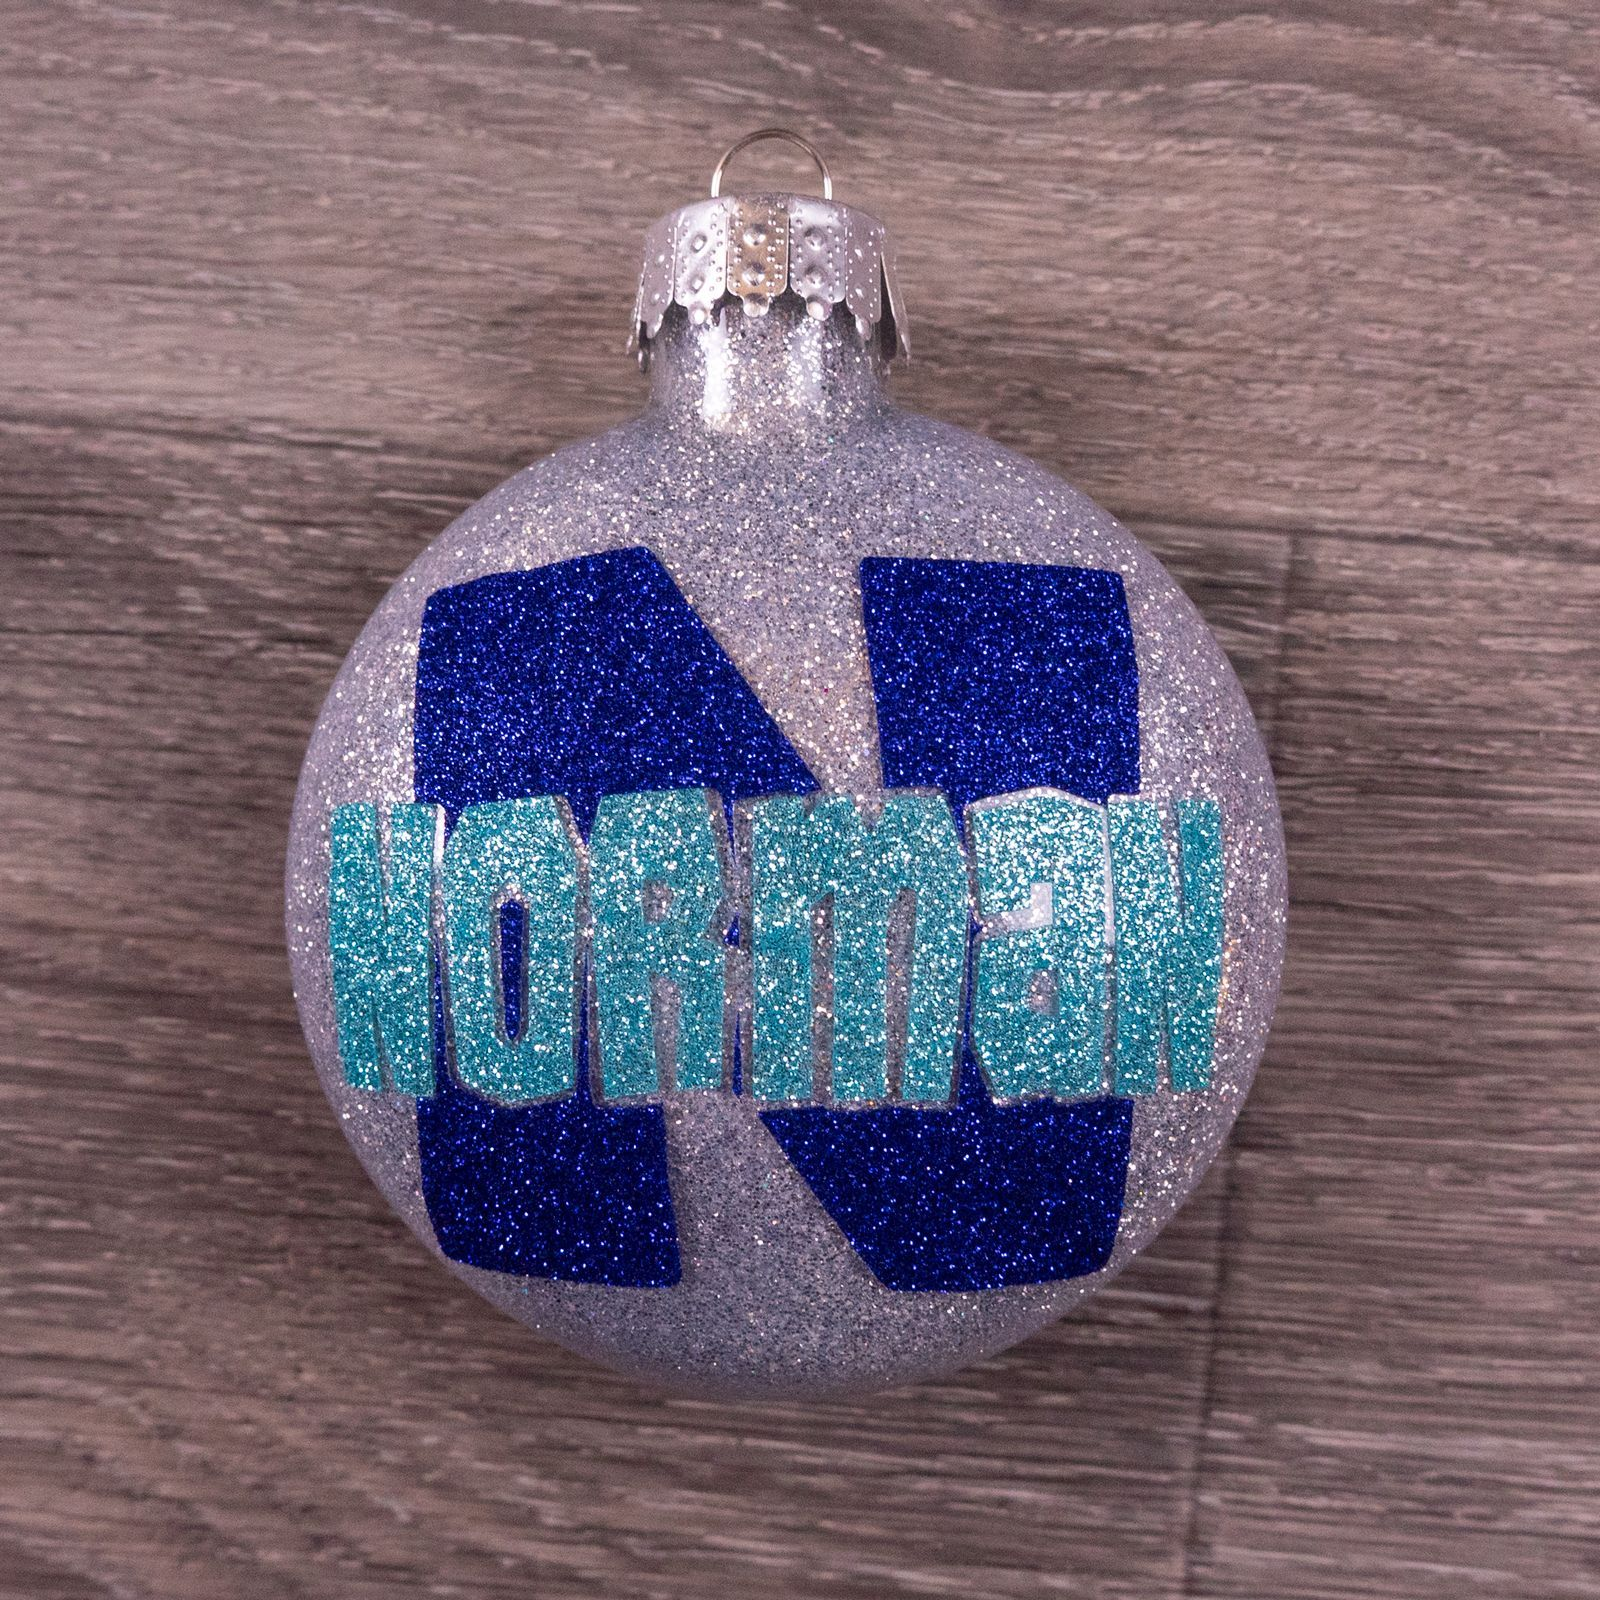 How To Make Custom Glitter Ornaments Specialty Materials Glitter Ornaments Custom Glitter Custom Ornament